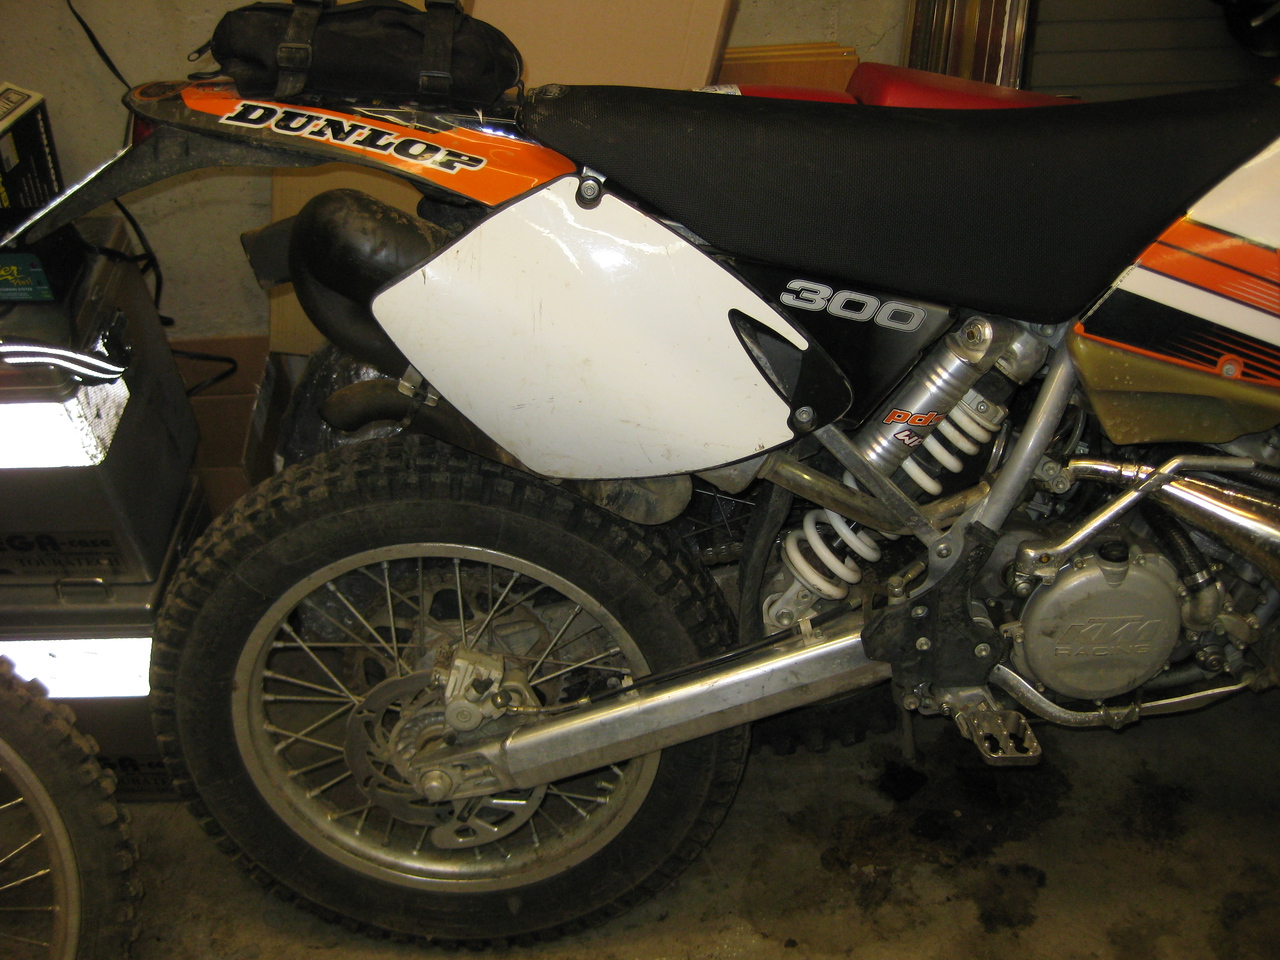 2002 KTM300EXC, Michelin trials tire, EE sharkfin, Fastways pegs, DbSnorkel, FMF silencer, Tall Soft Guts seat.